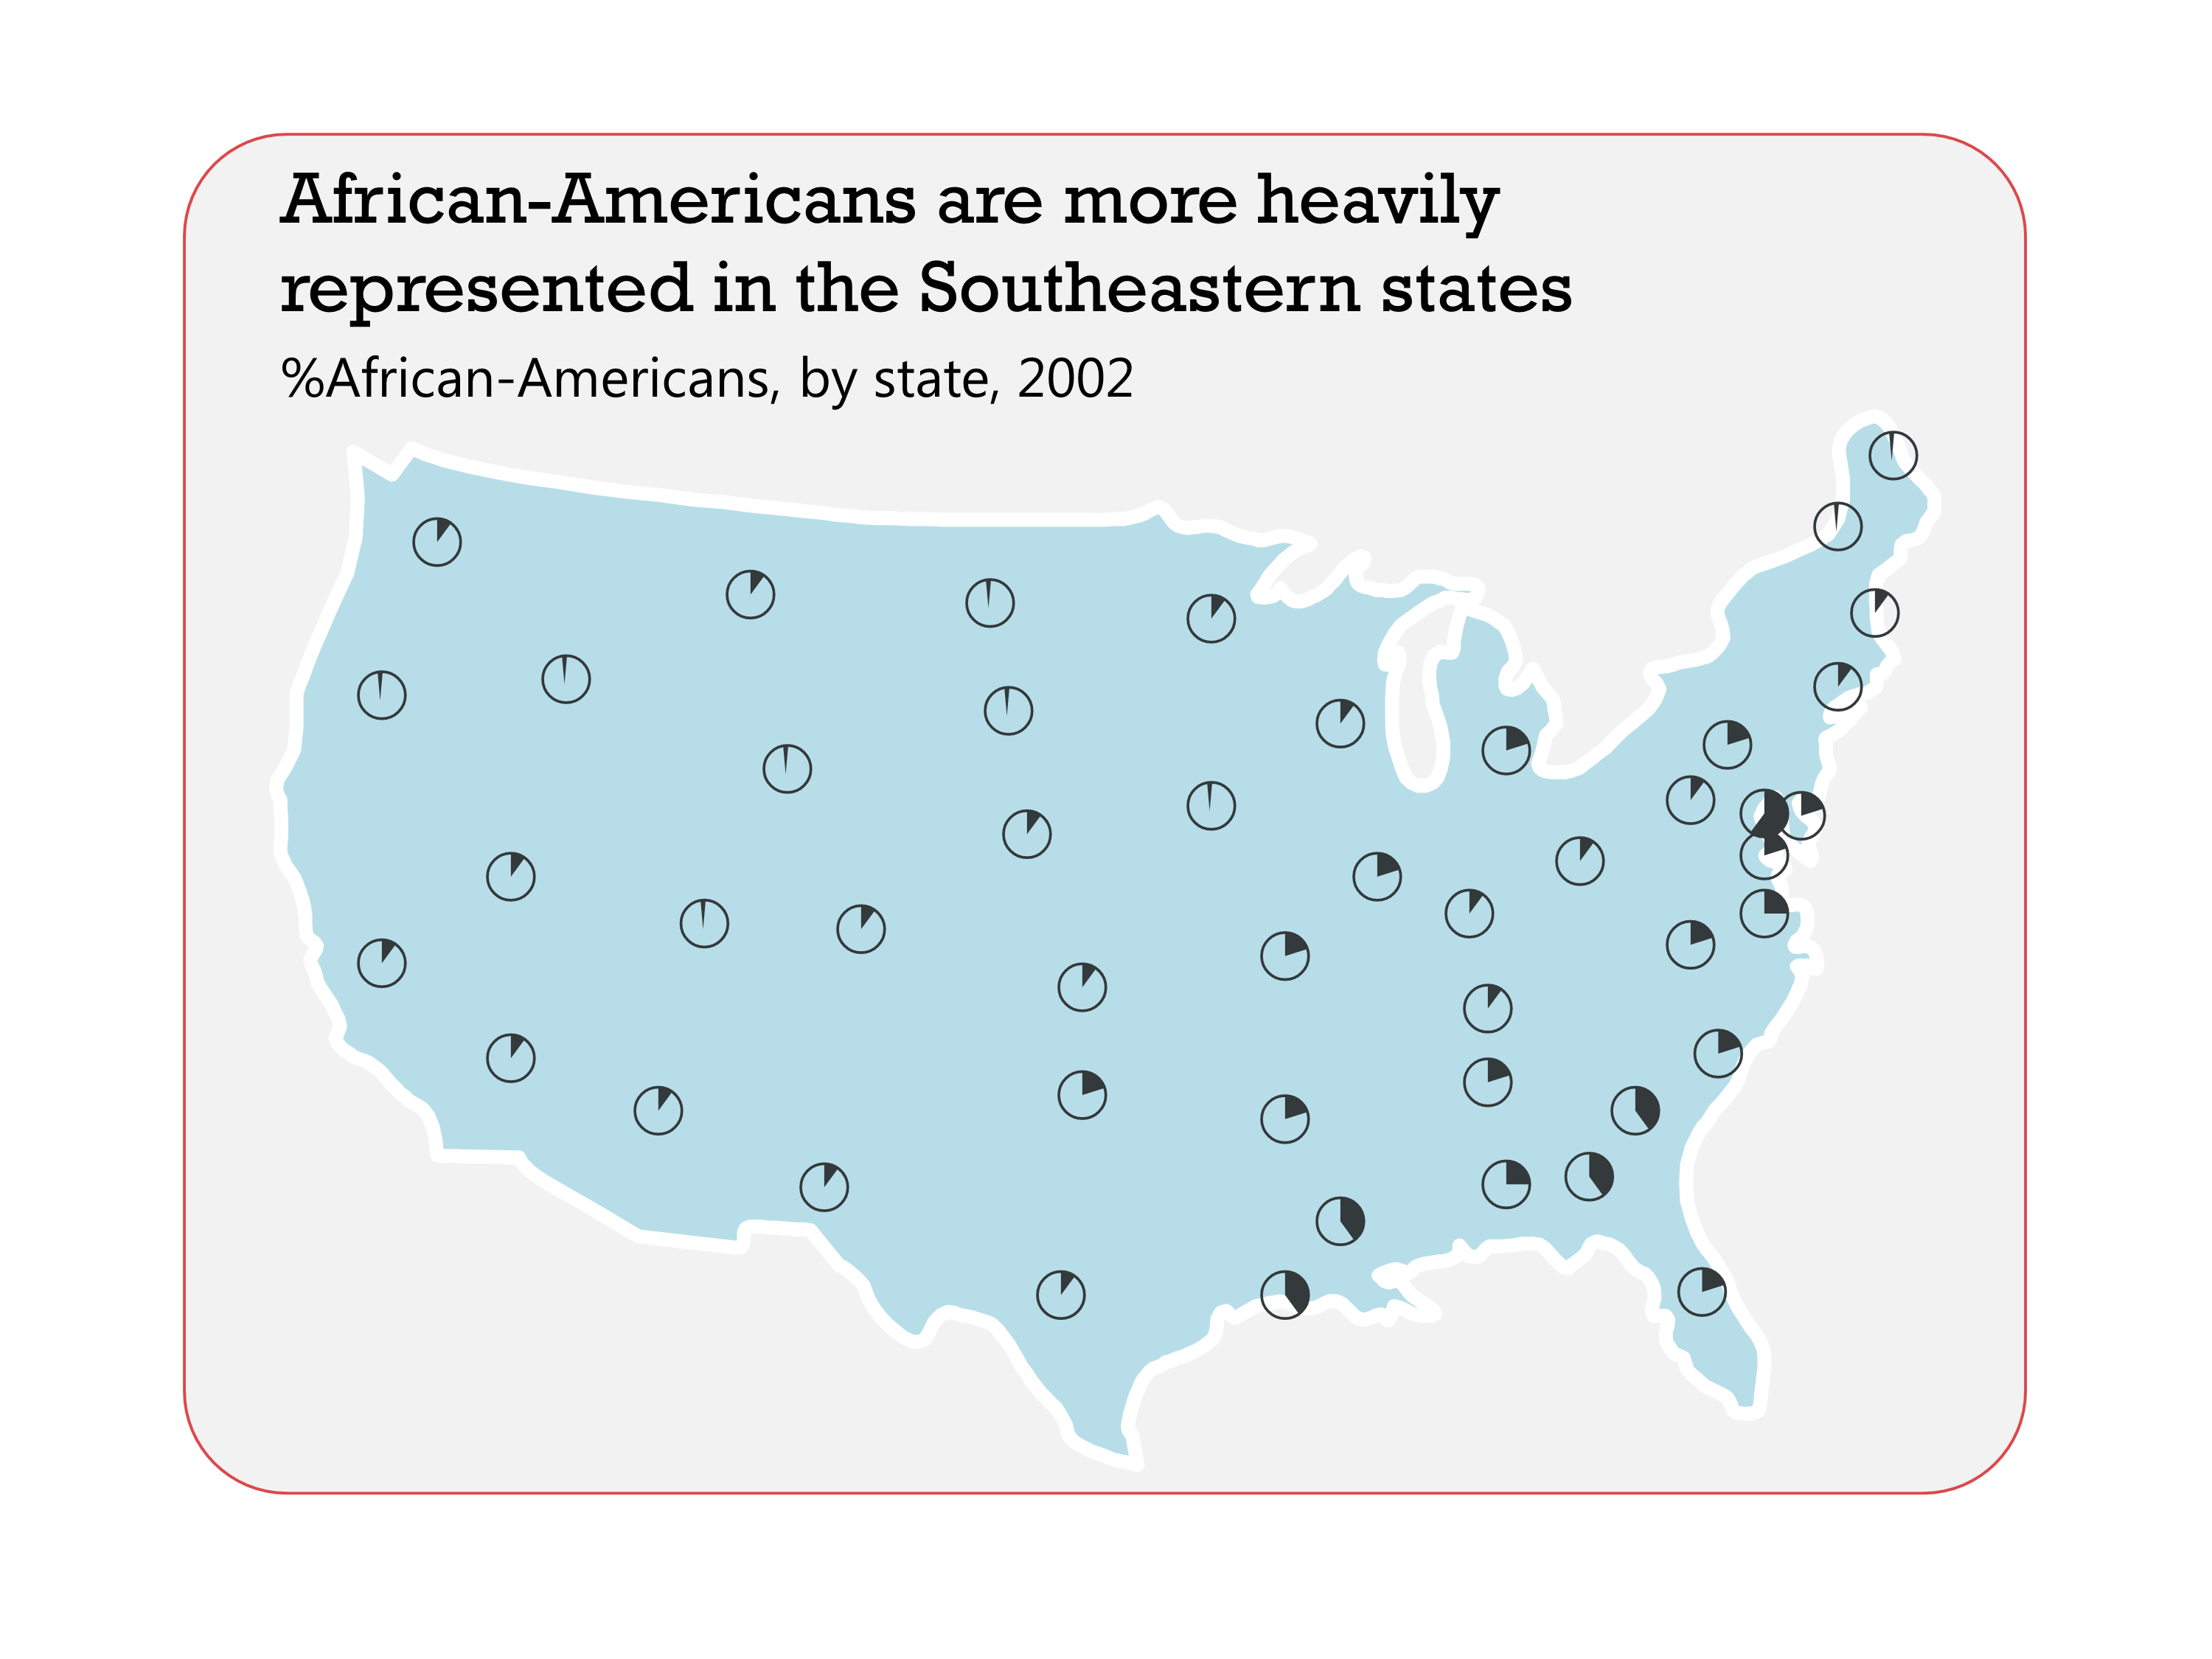 Tiny pie charts showing the percentages of African Americans per state in the US